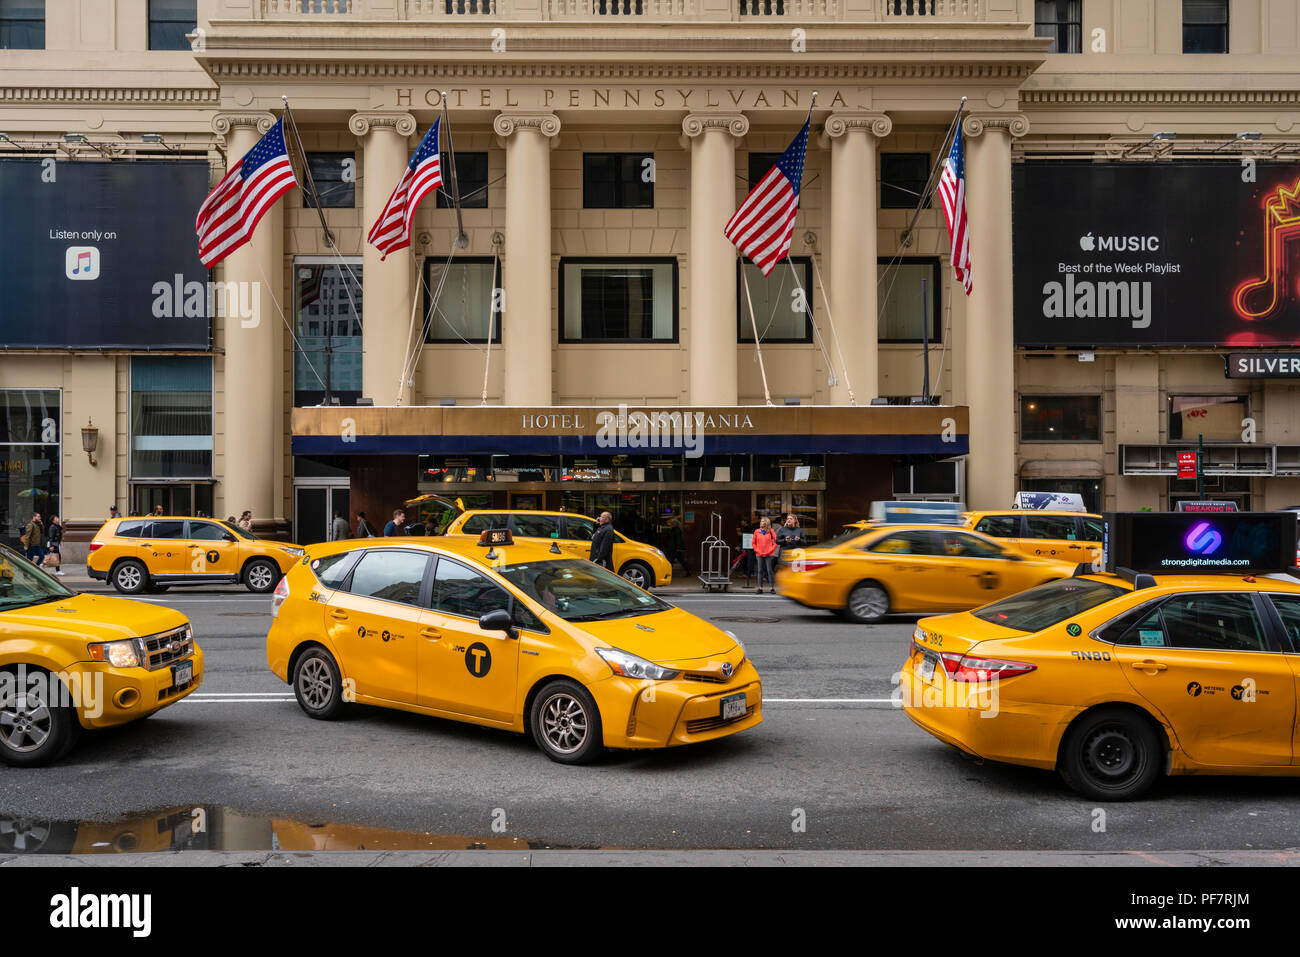 Taxis waiting outside a luxury hotel in New York City - Stock Image